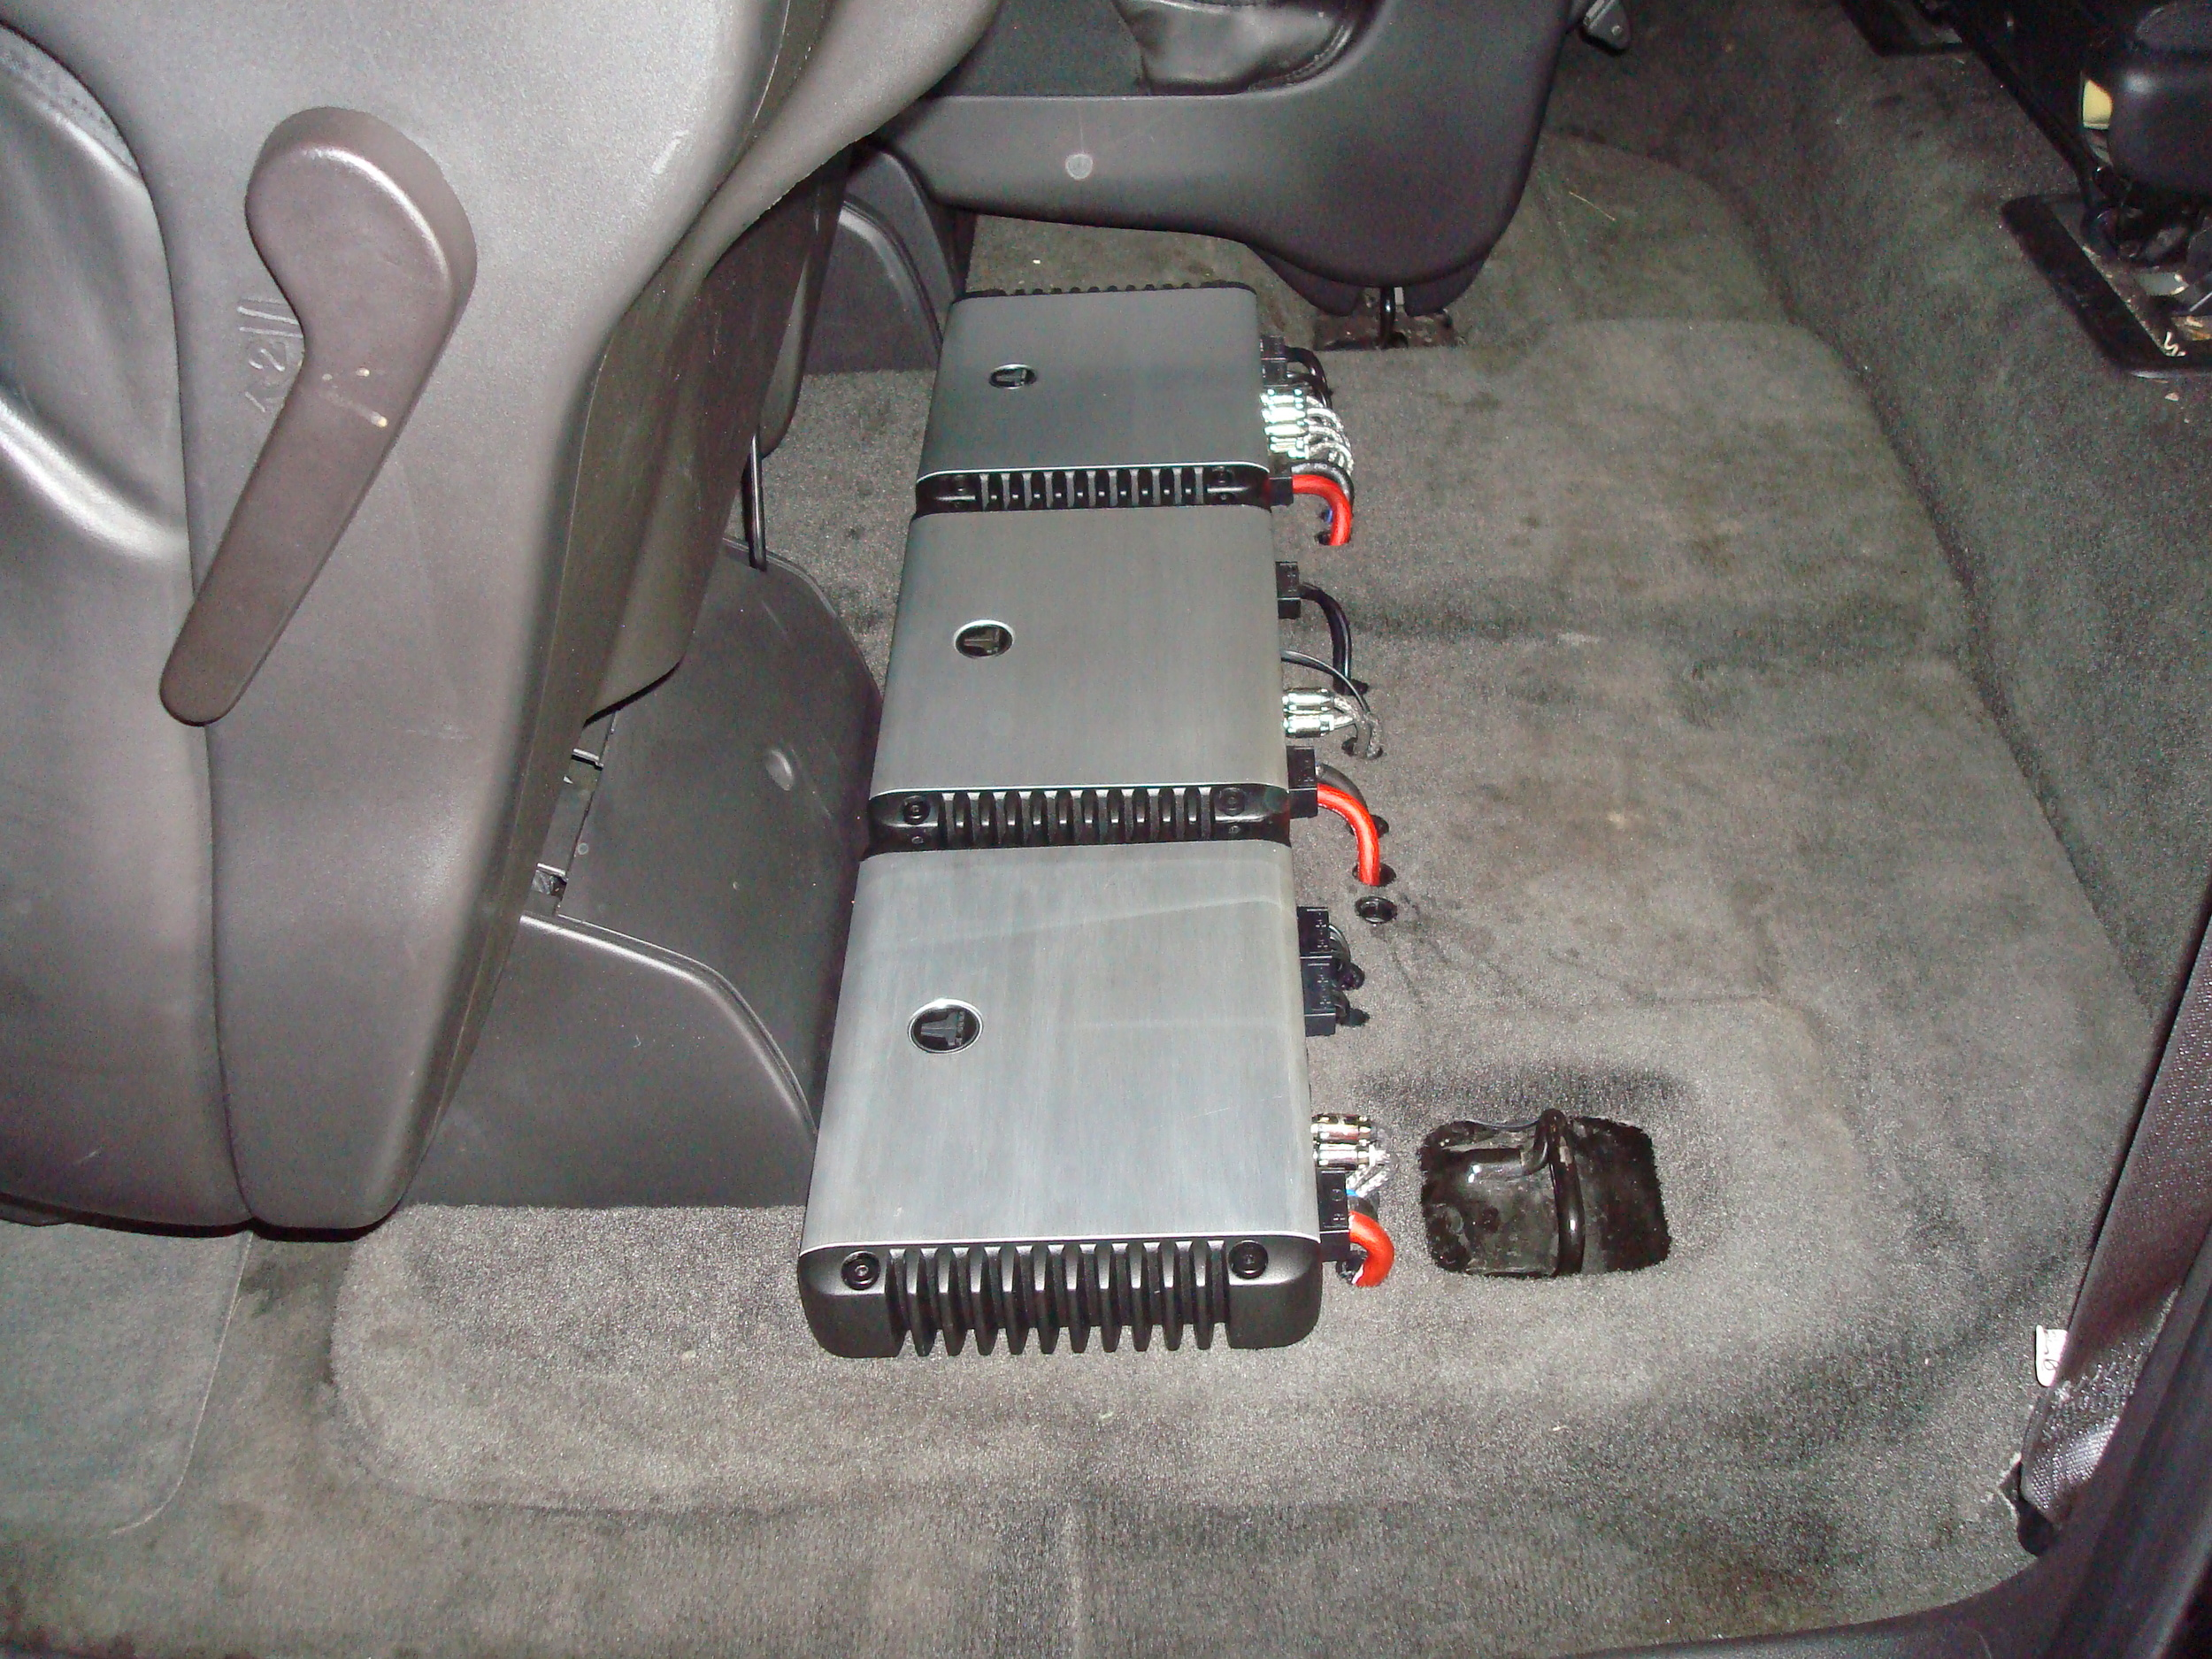 2007 Yukon Denali XL - JL Audio HD Amps completely hidden underneath the 2nd row seat